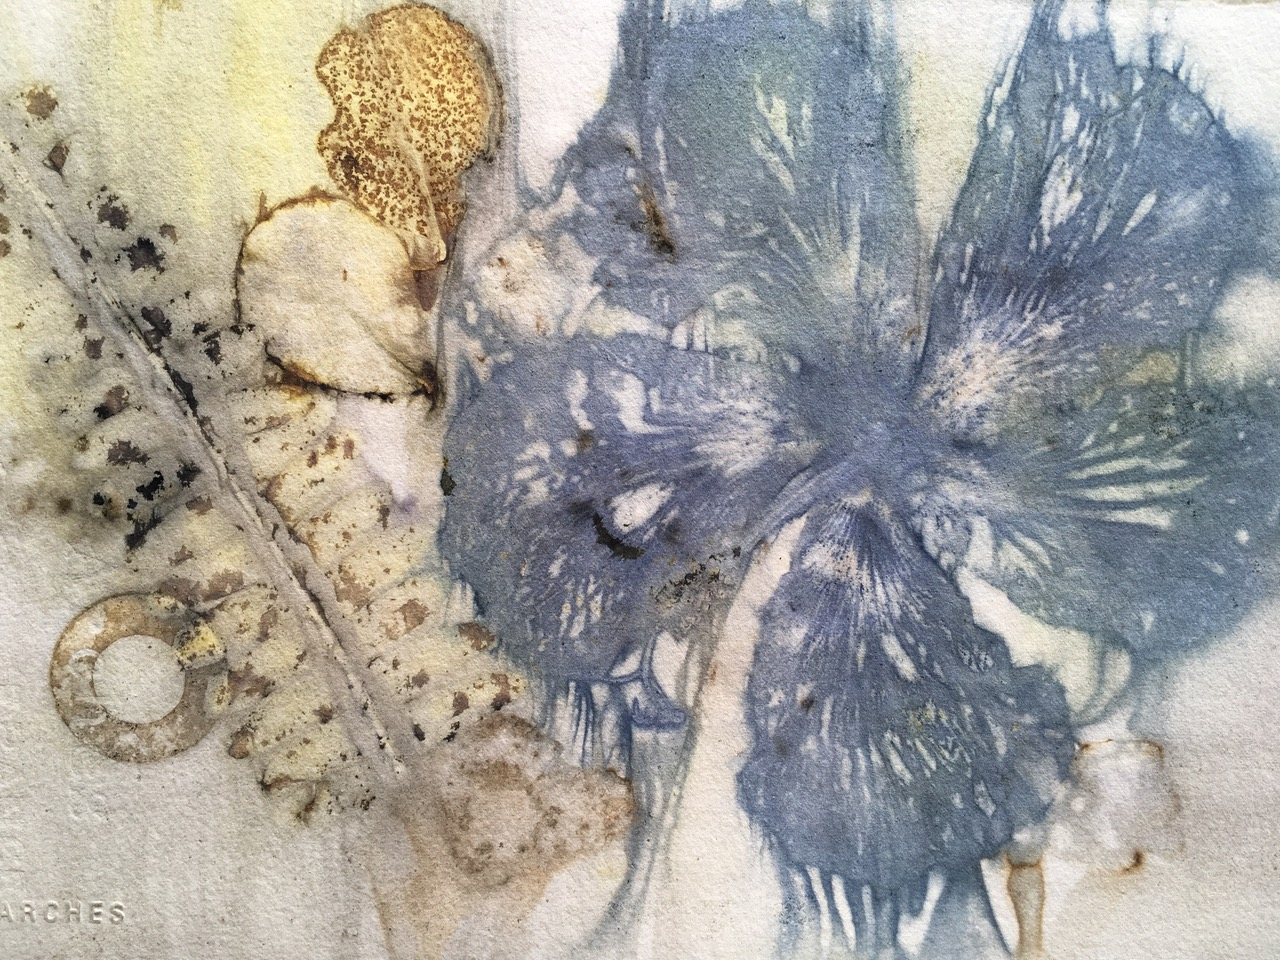 © 2019 Merike van Zanten. Hibiscus and fern print on paper from Merike's residency.